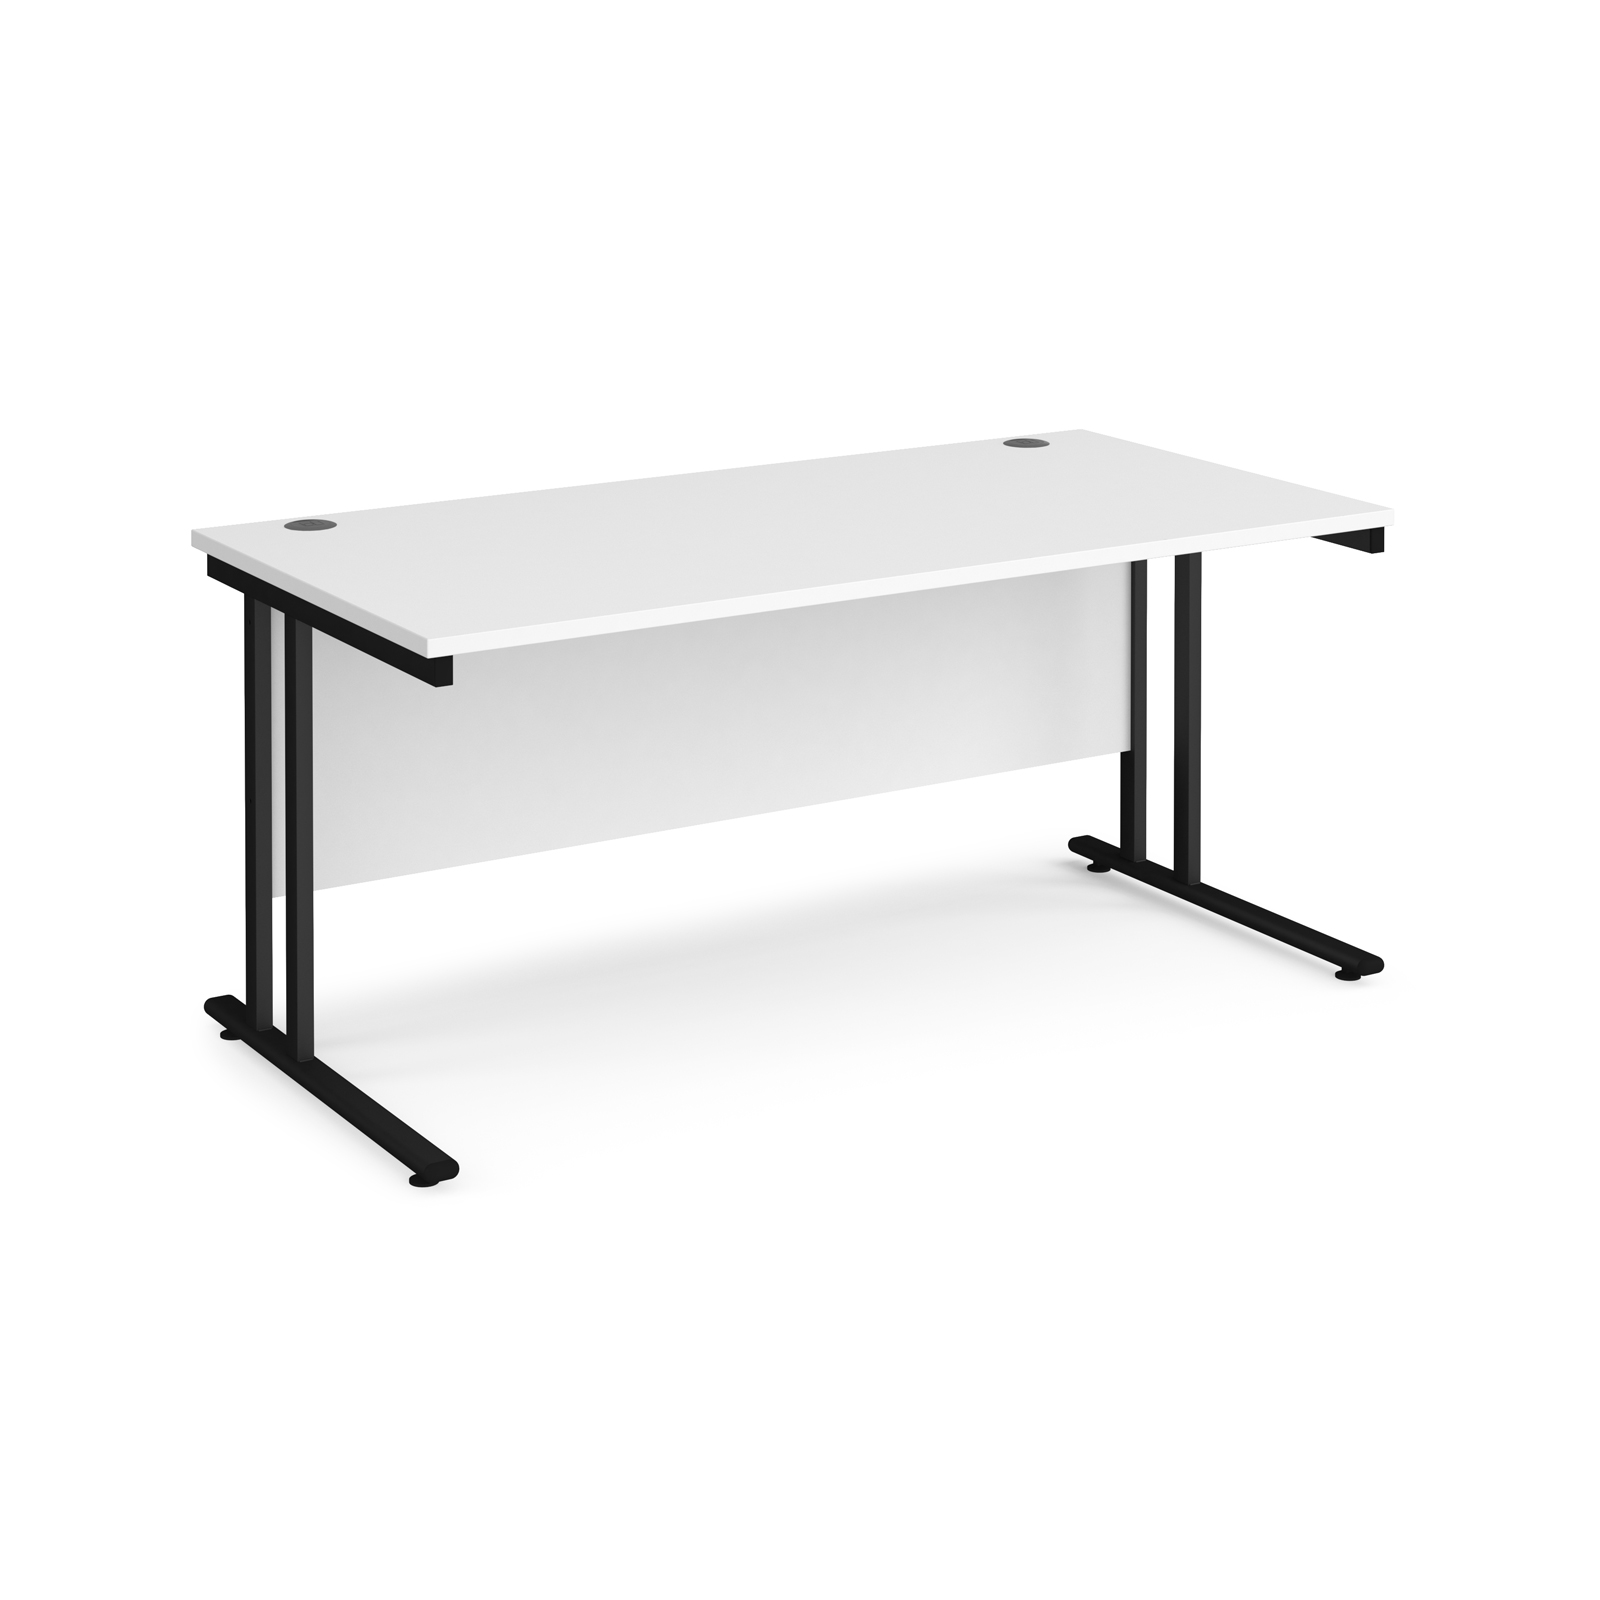 Maestro 25 straight desk 1600mm x 800mm - black cantilever leg frame, white top